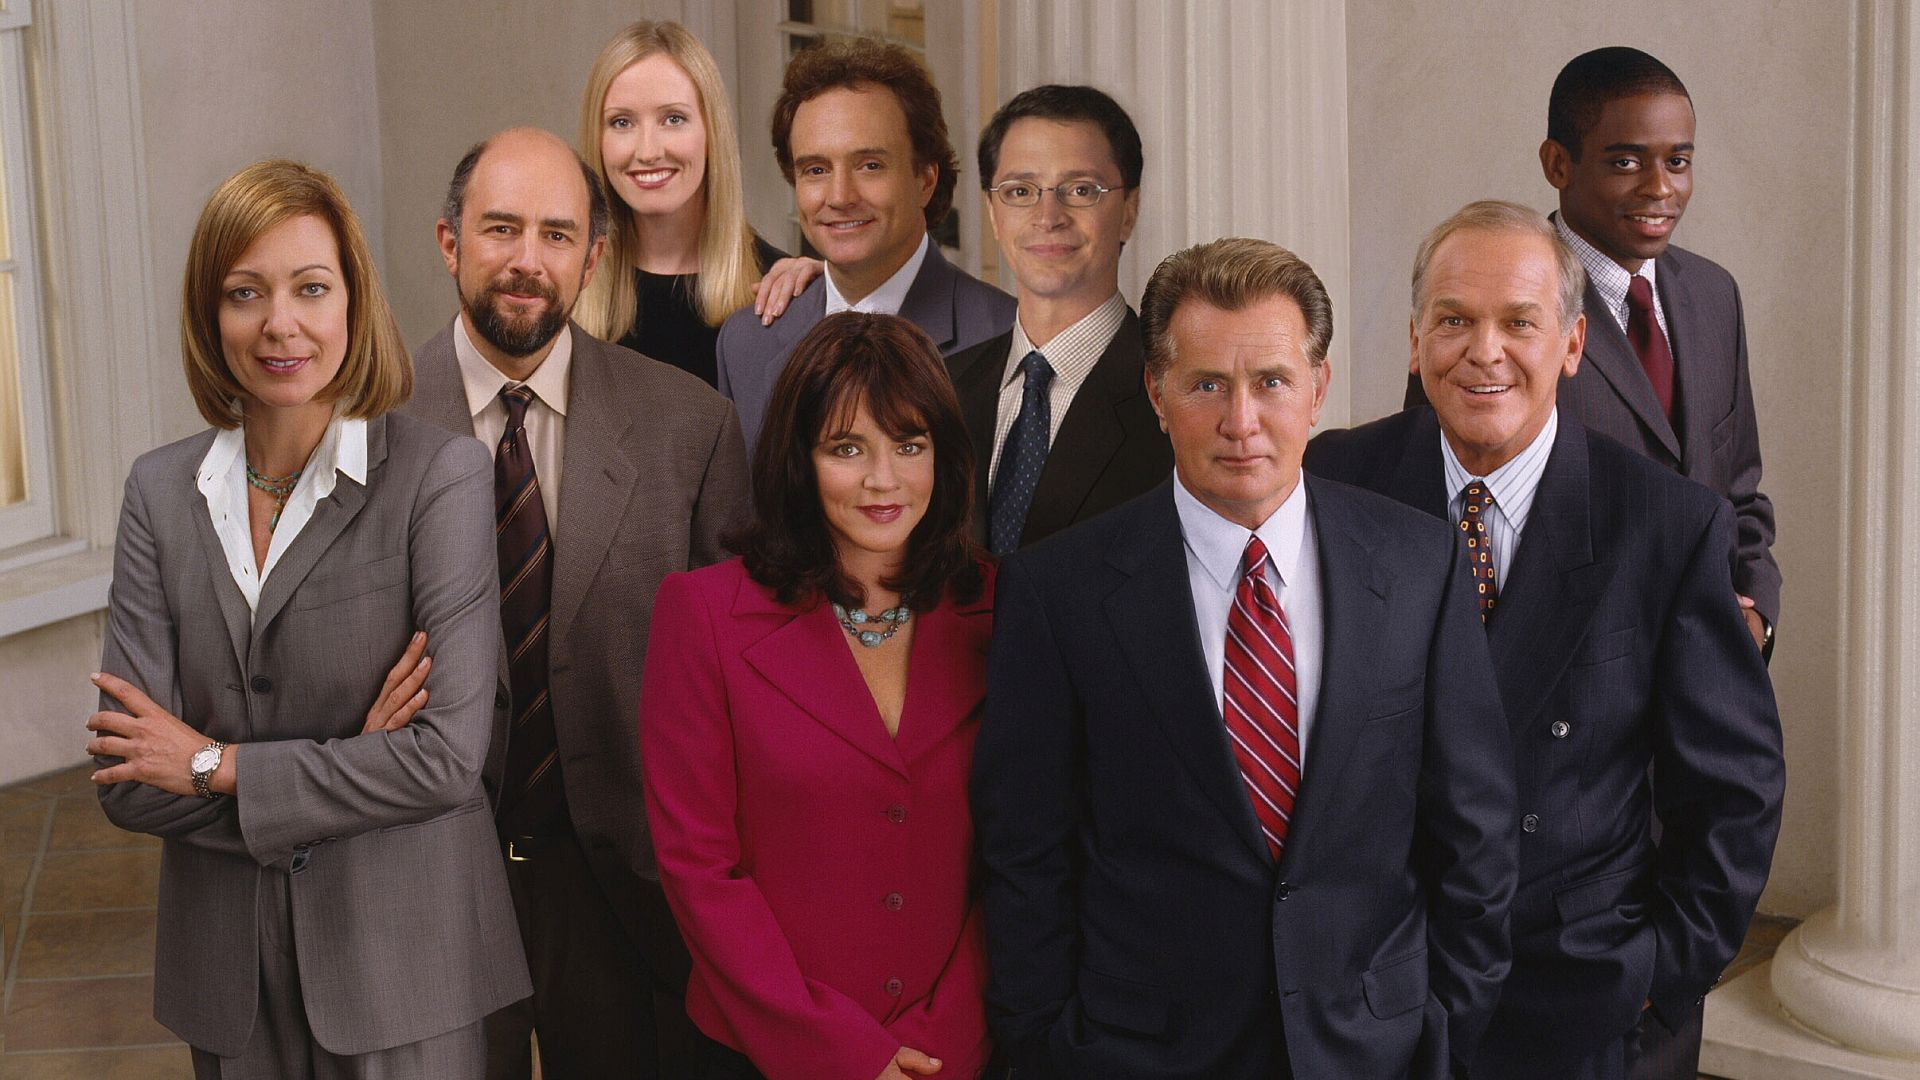 an analysis of the television show the west wing The west wing (1999–2006) is a television show about a fictional united states presidential administration, set mainly in the west wing of the white house.